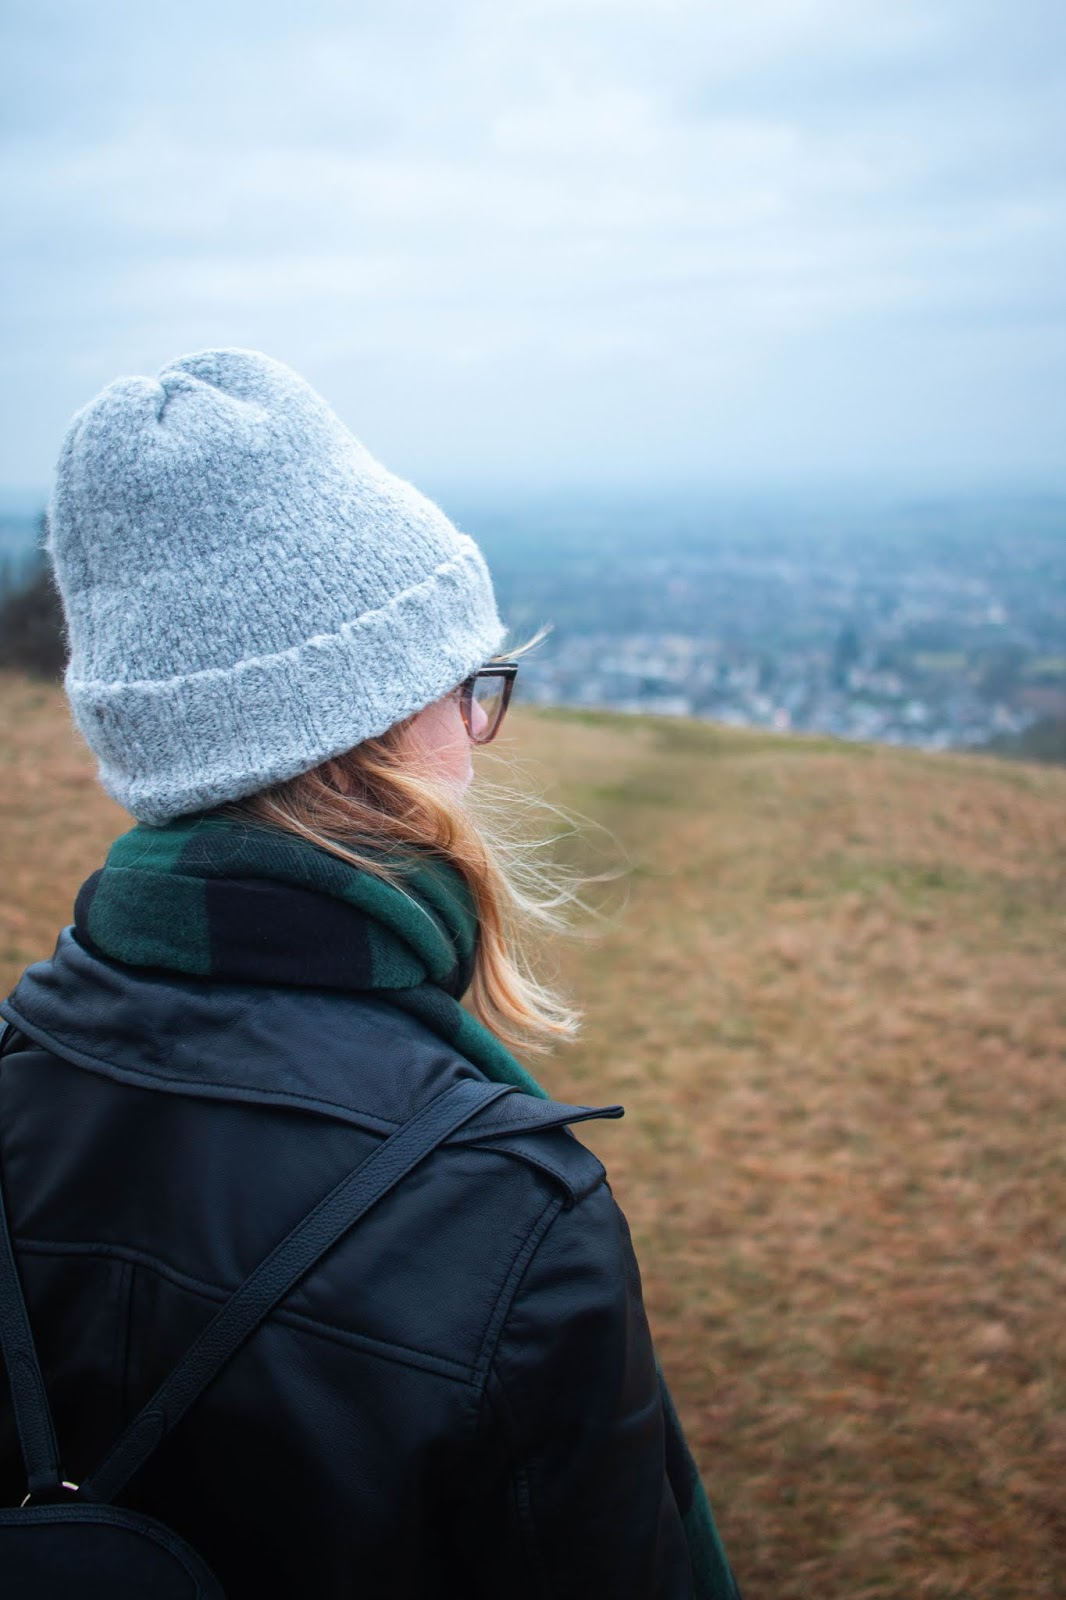 chloe harriets wearing grey beanie hat, and leather jacket looks out to scenic view - 2020 bucket list